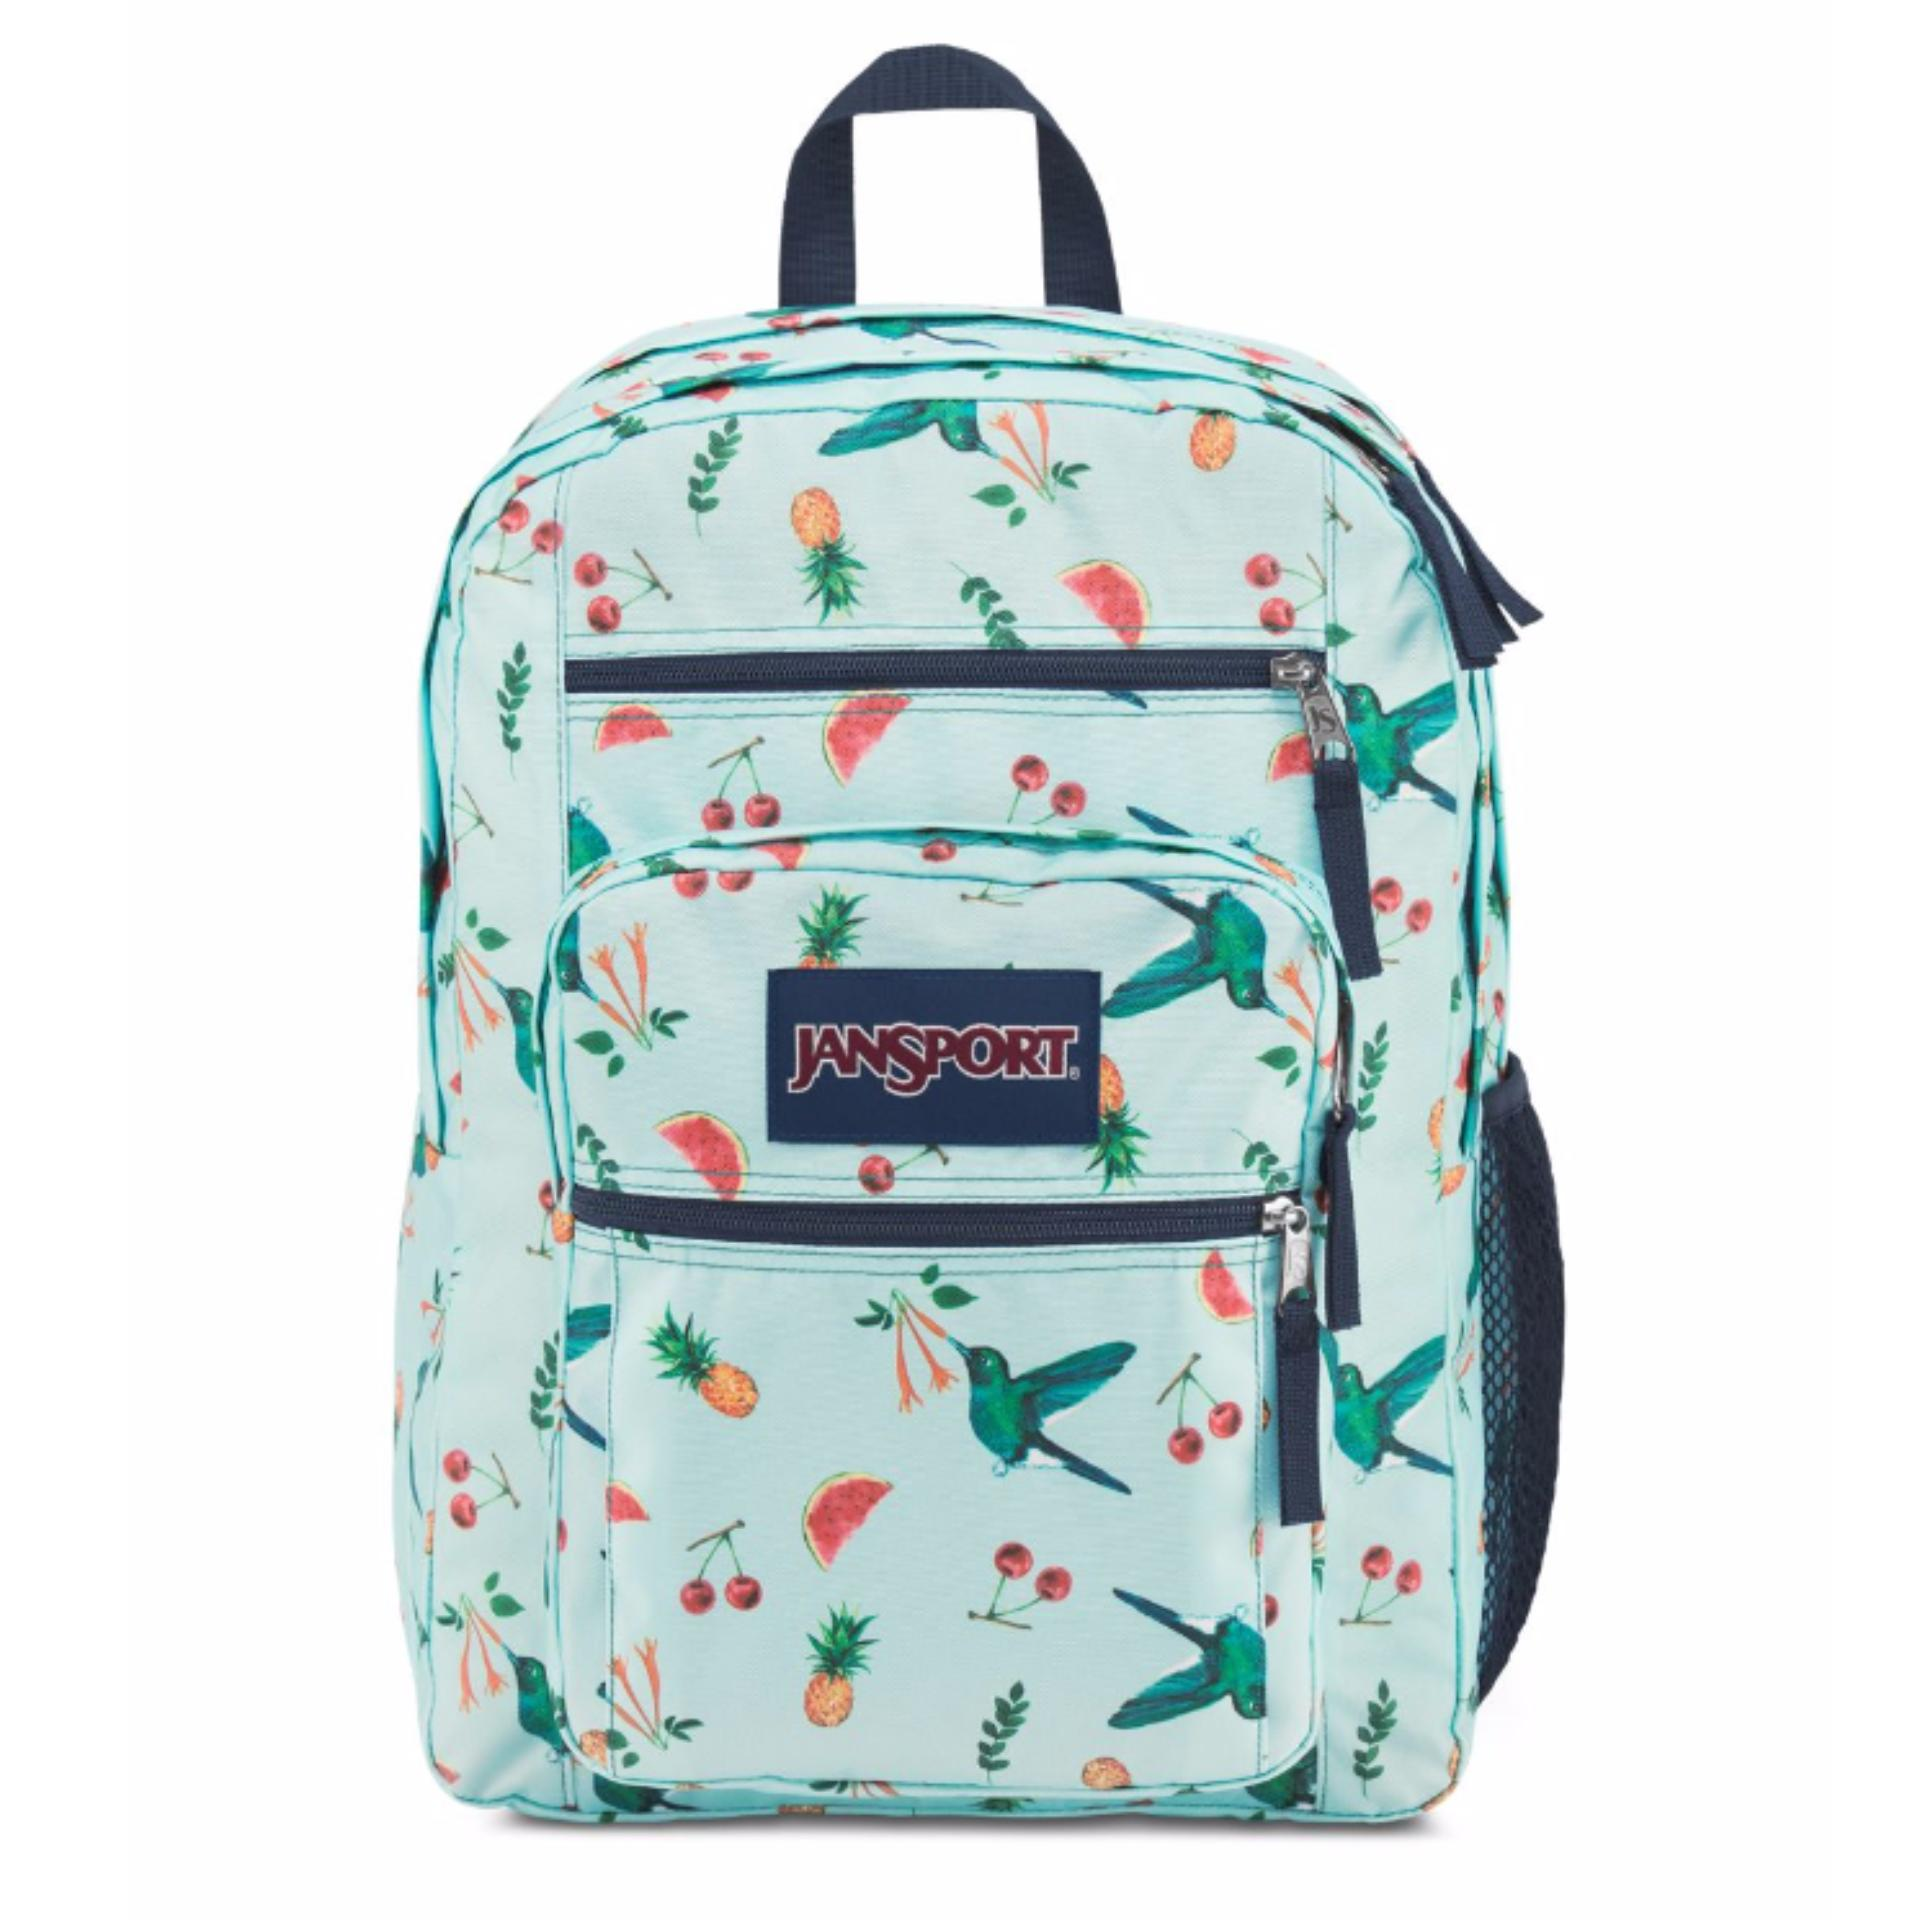 Where To Buy Jansport School Bags In Singapore - Swiss